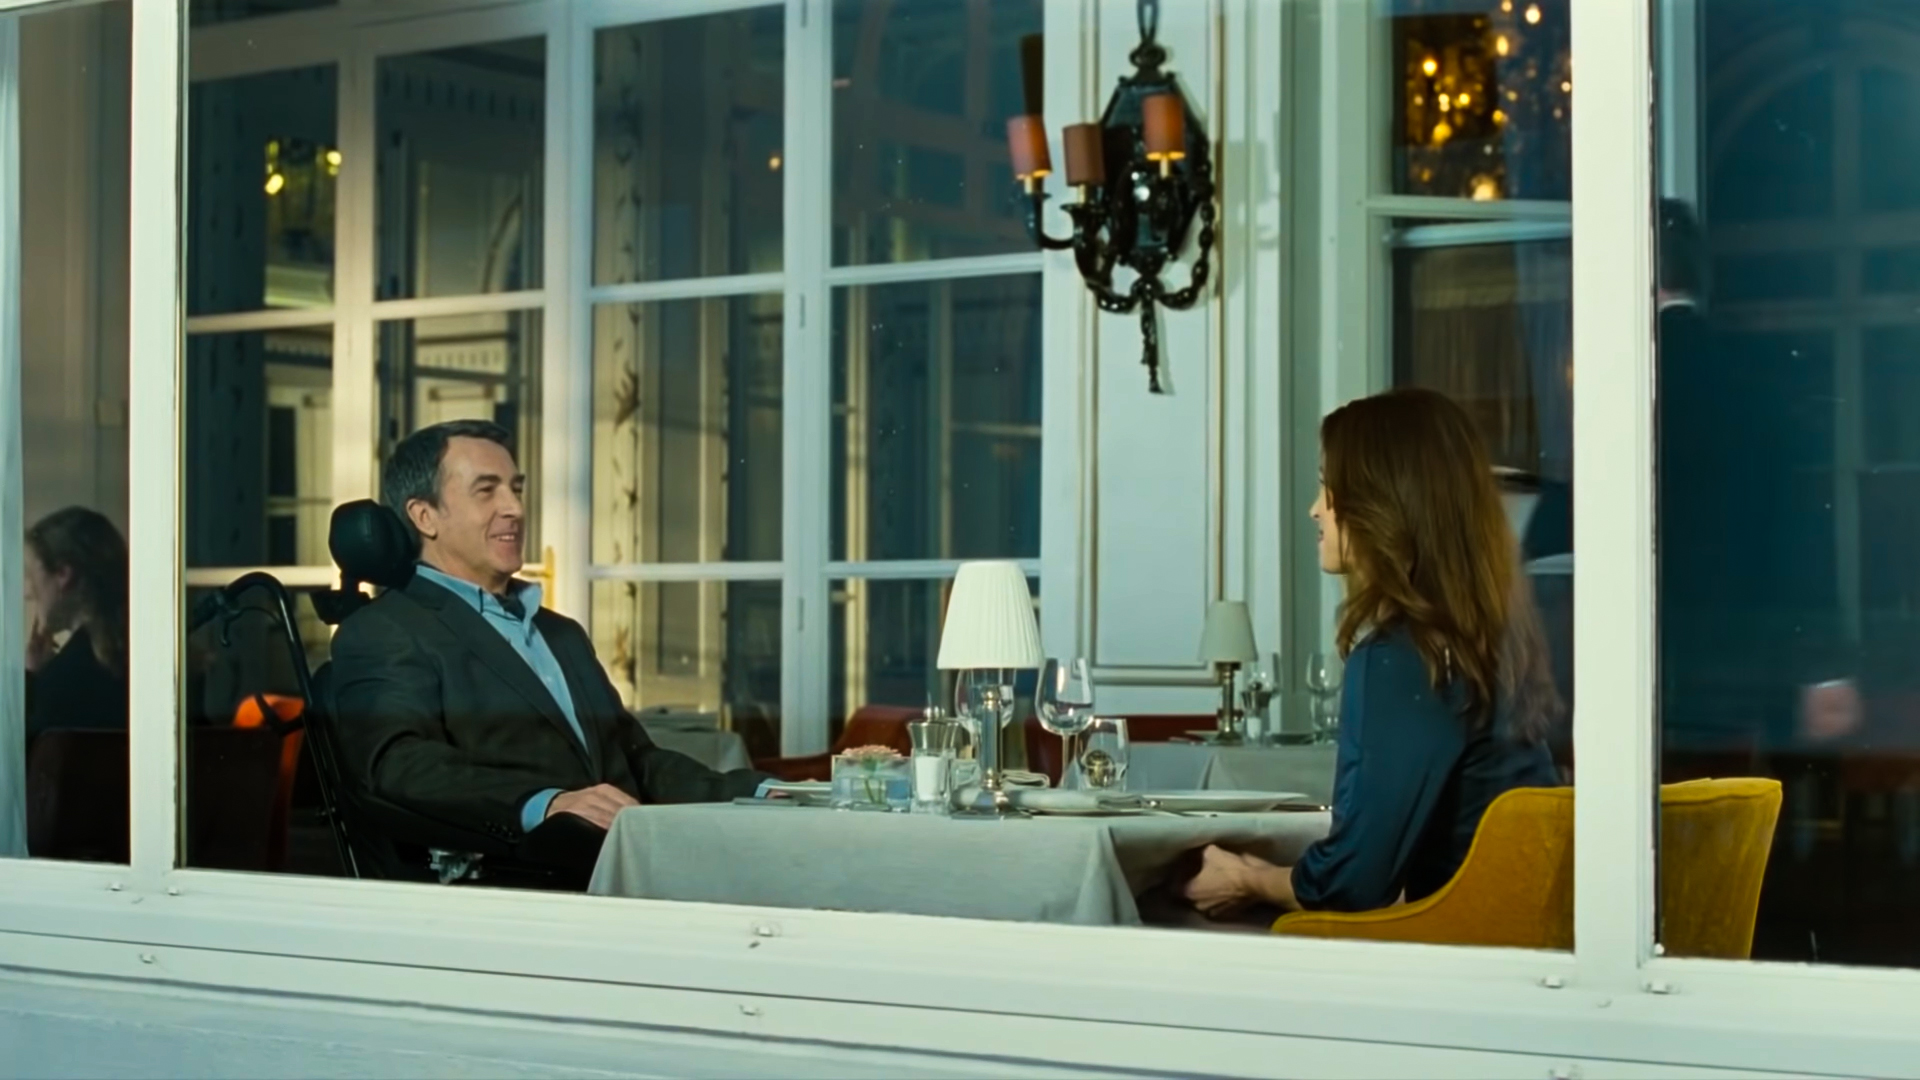 Intouchables-Ending-Scene-that-Makes-you-Think-about-the-Movie